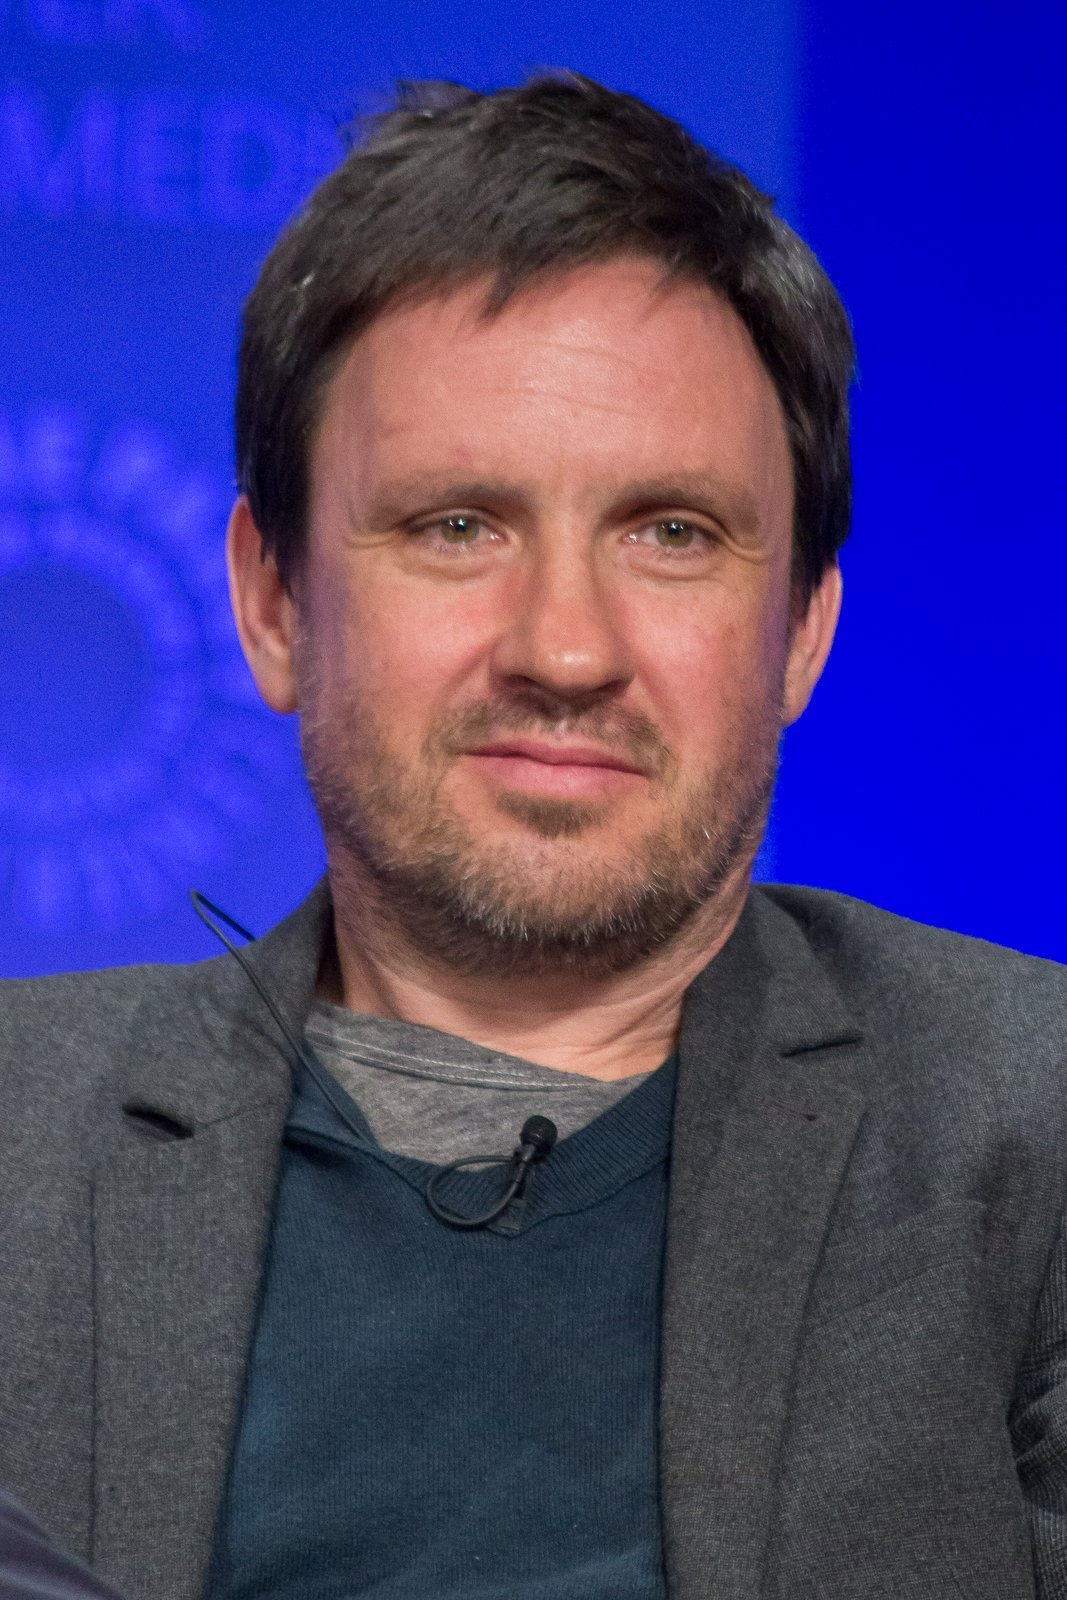 Alex Cary at PaleyFest 2015, an Evening with the Cast and Creative Team of Homeland. | Source: Wikimedia Commons